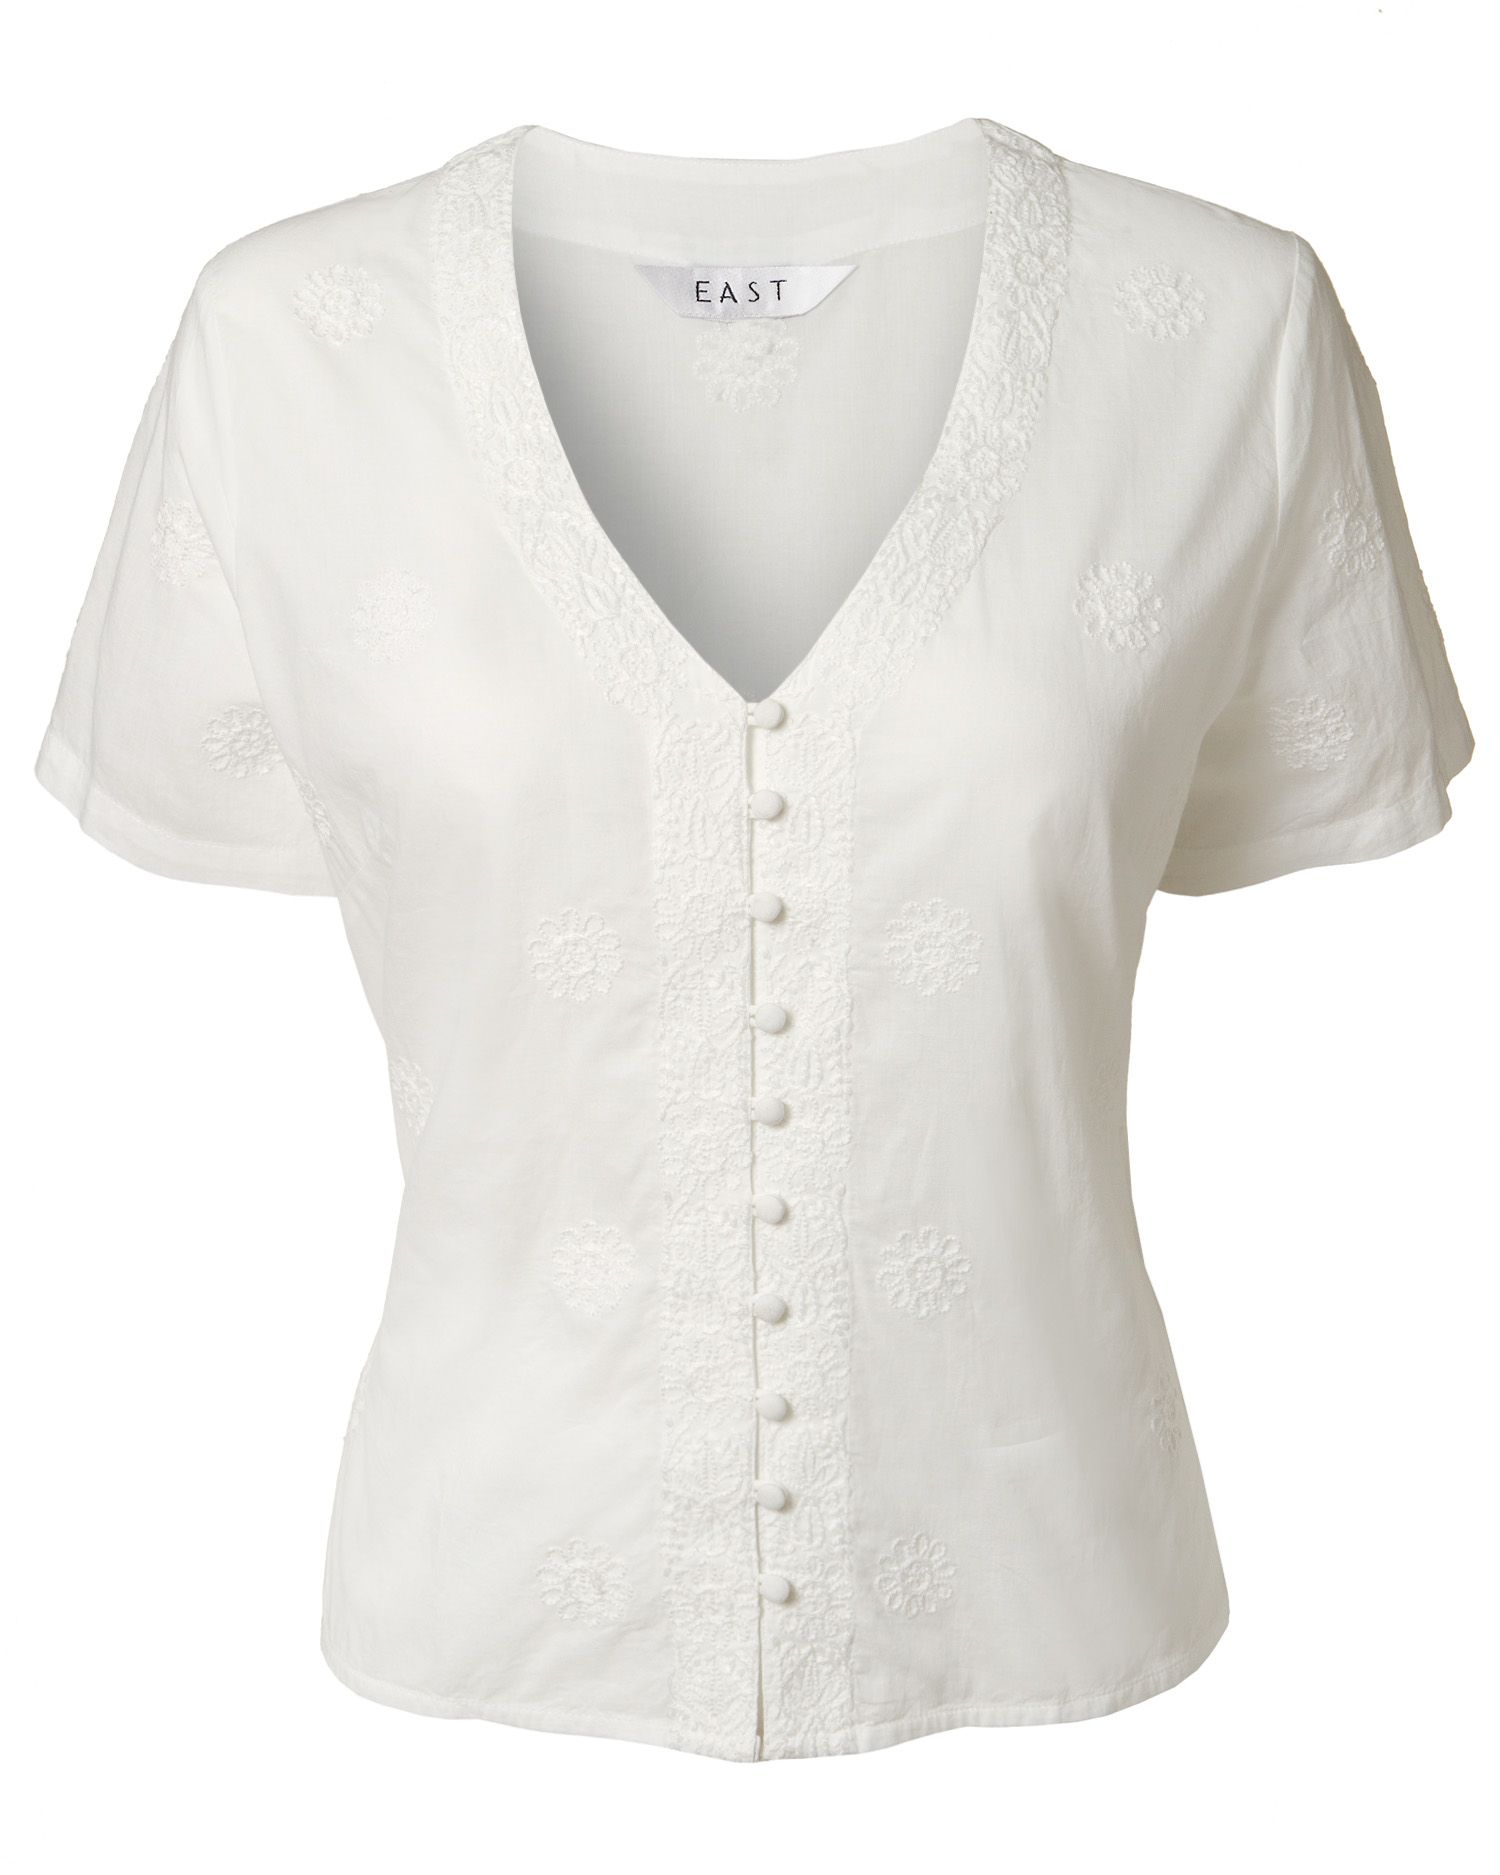 East Womens East Betty emb flower blouse, White product image